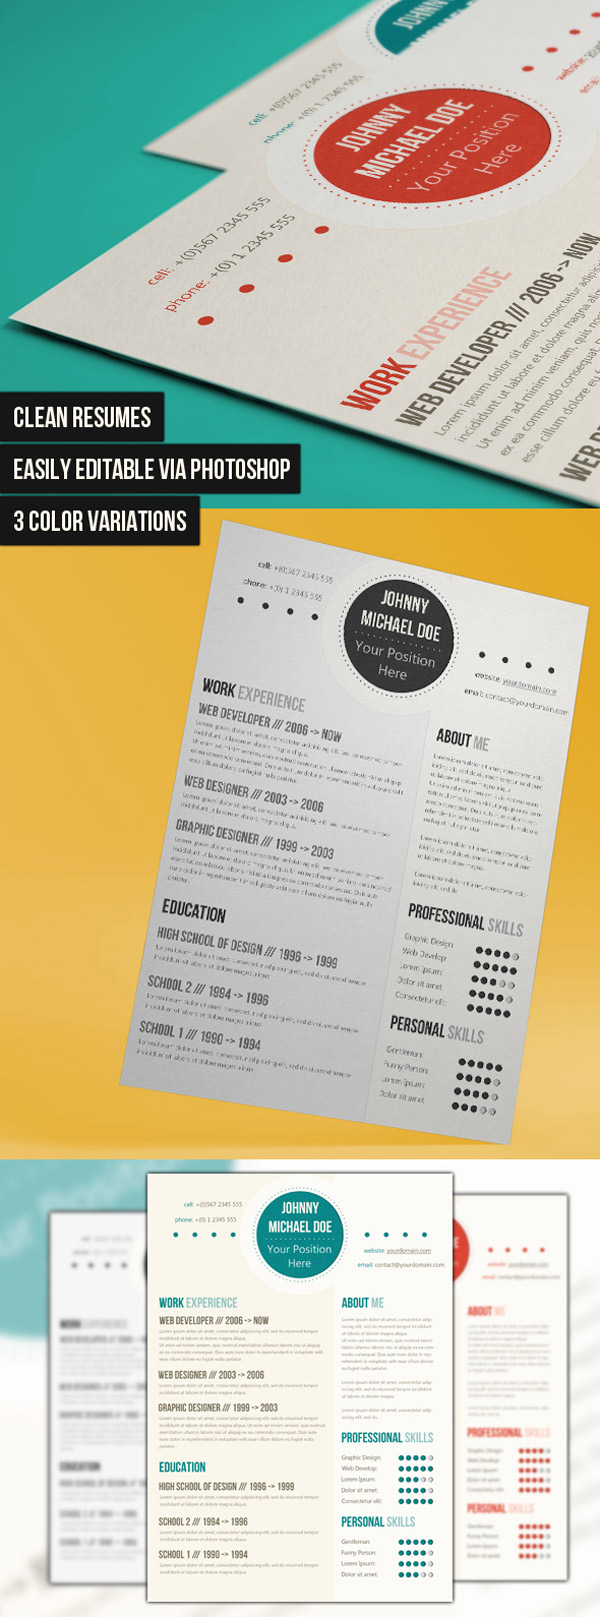 25 creative cv templates that will make you stand out 25 awesome cv templates and examples 4